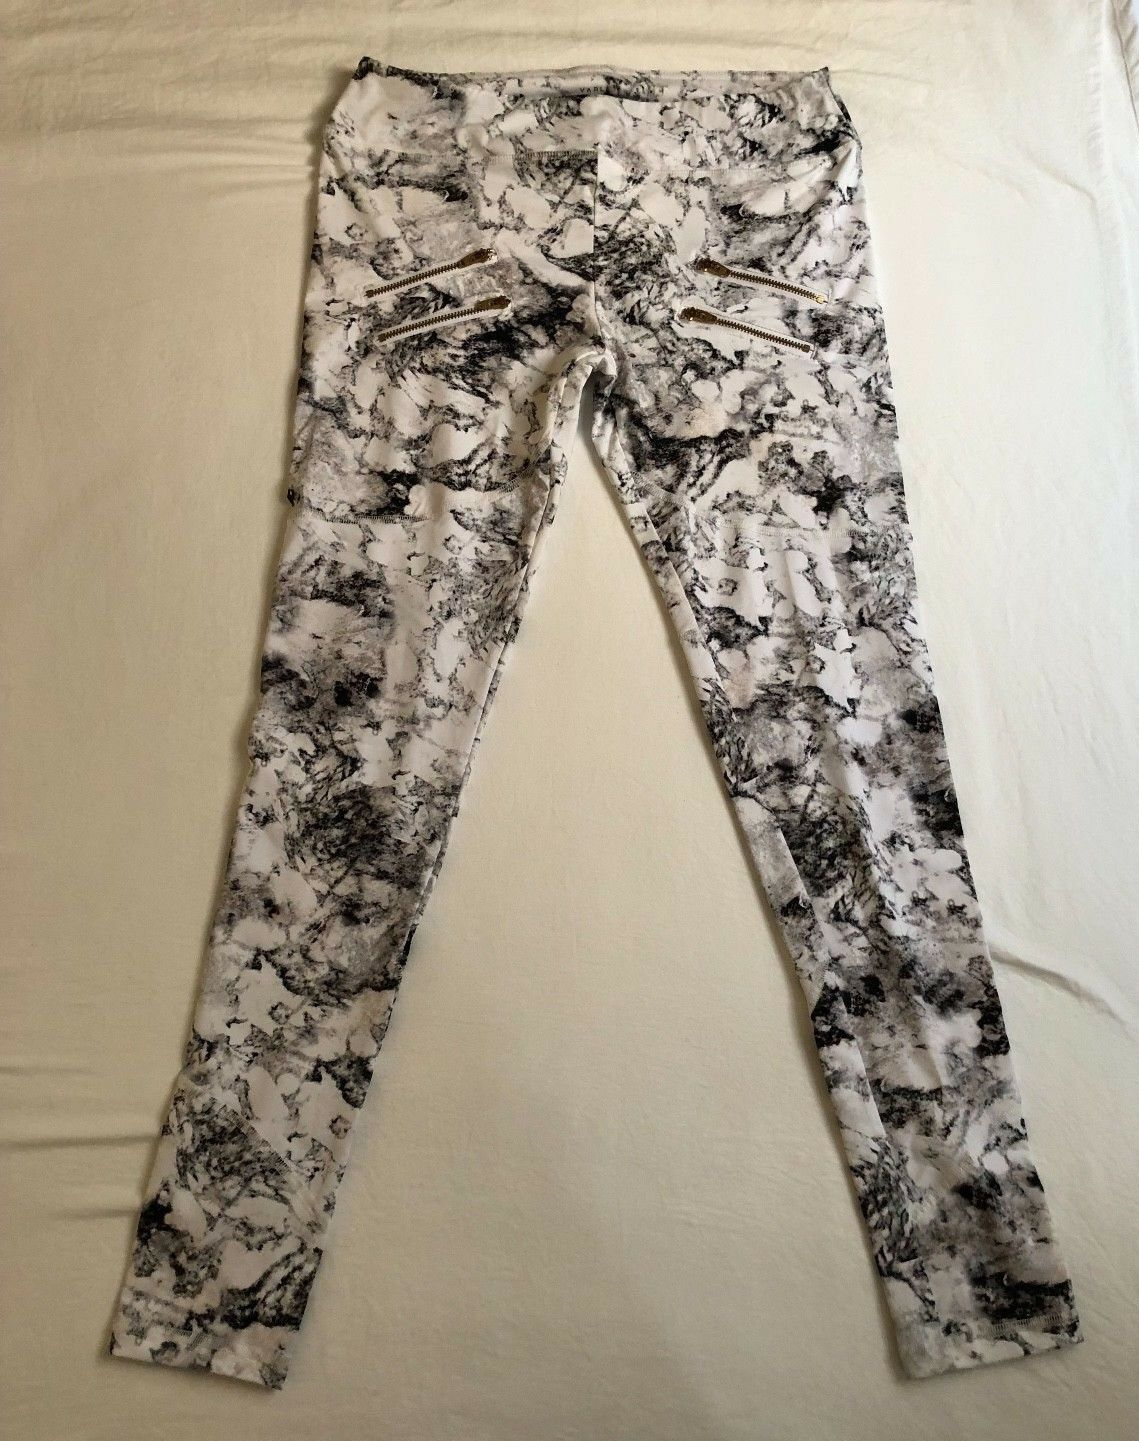 Varley Woman Sport Leggins Size S Excellent Condition Grey